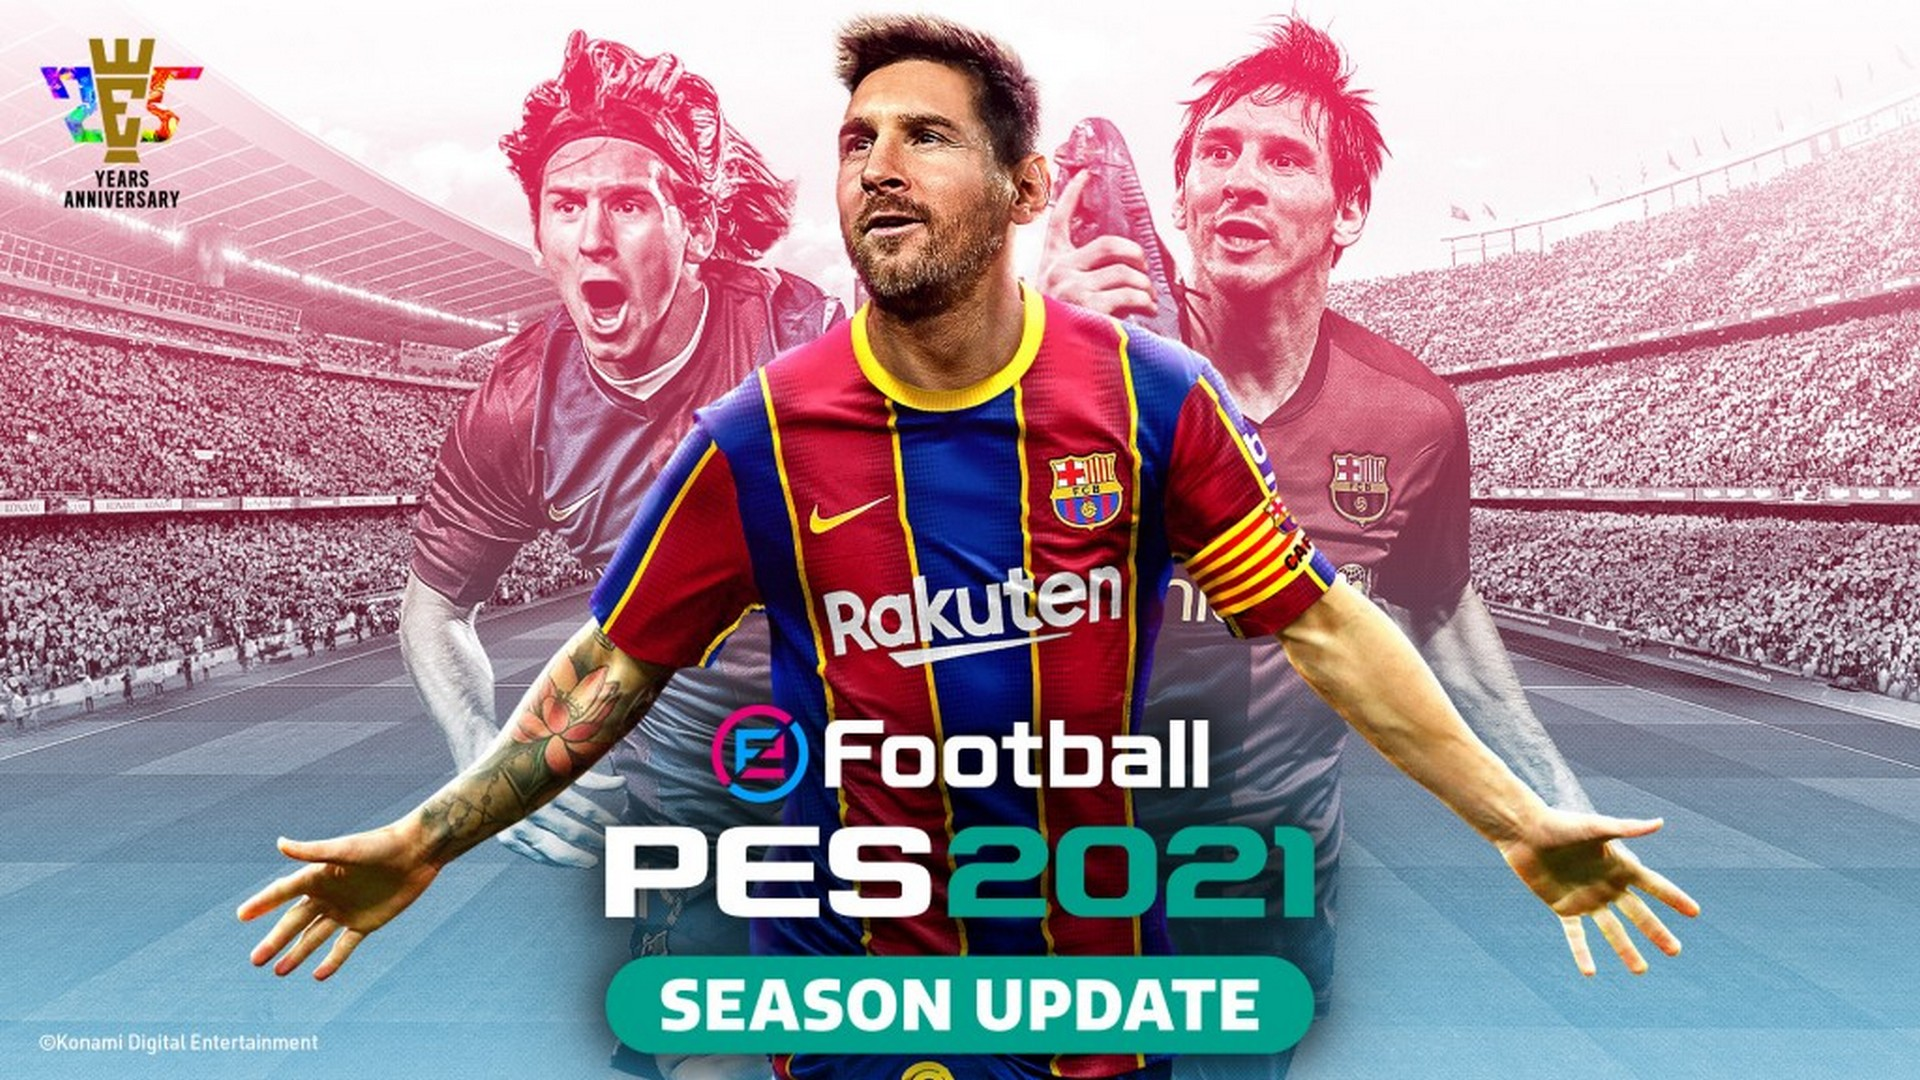 eFootball PES 2021 Season Update Data Pack 2.0 Is Now Available